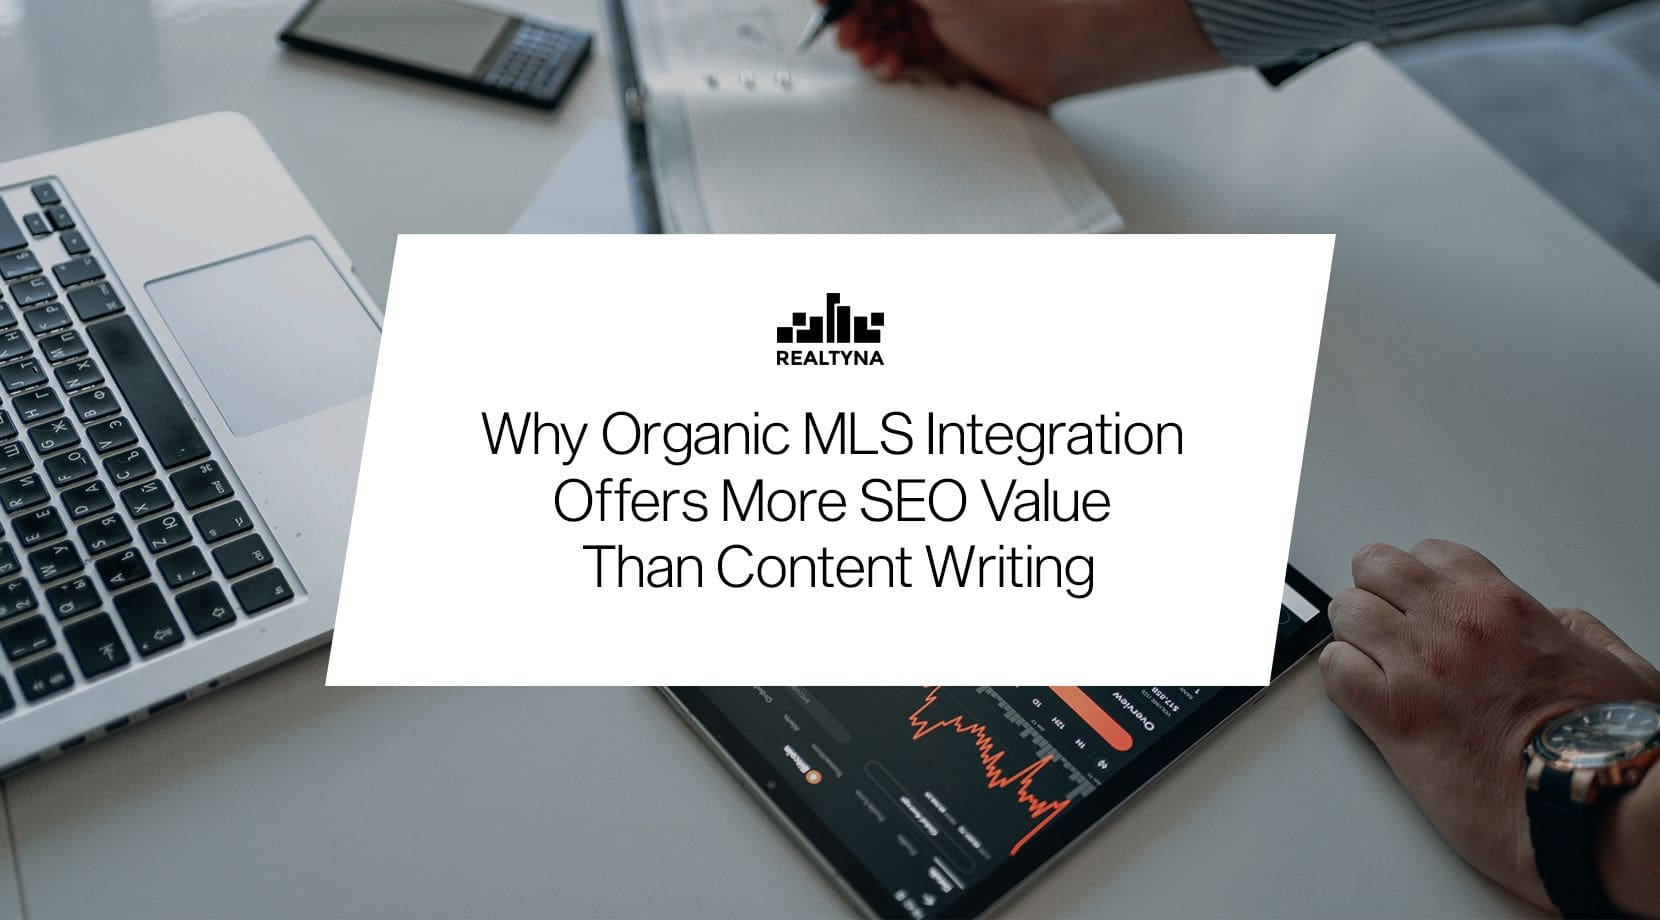 Why Organic MLS Integration Offers More SEO Value Than Content Writing